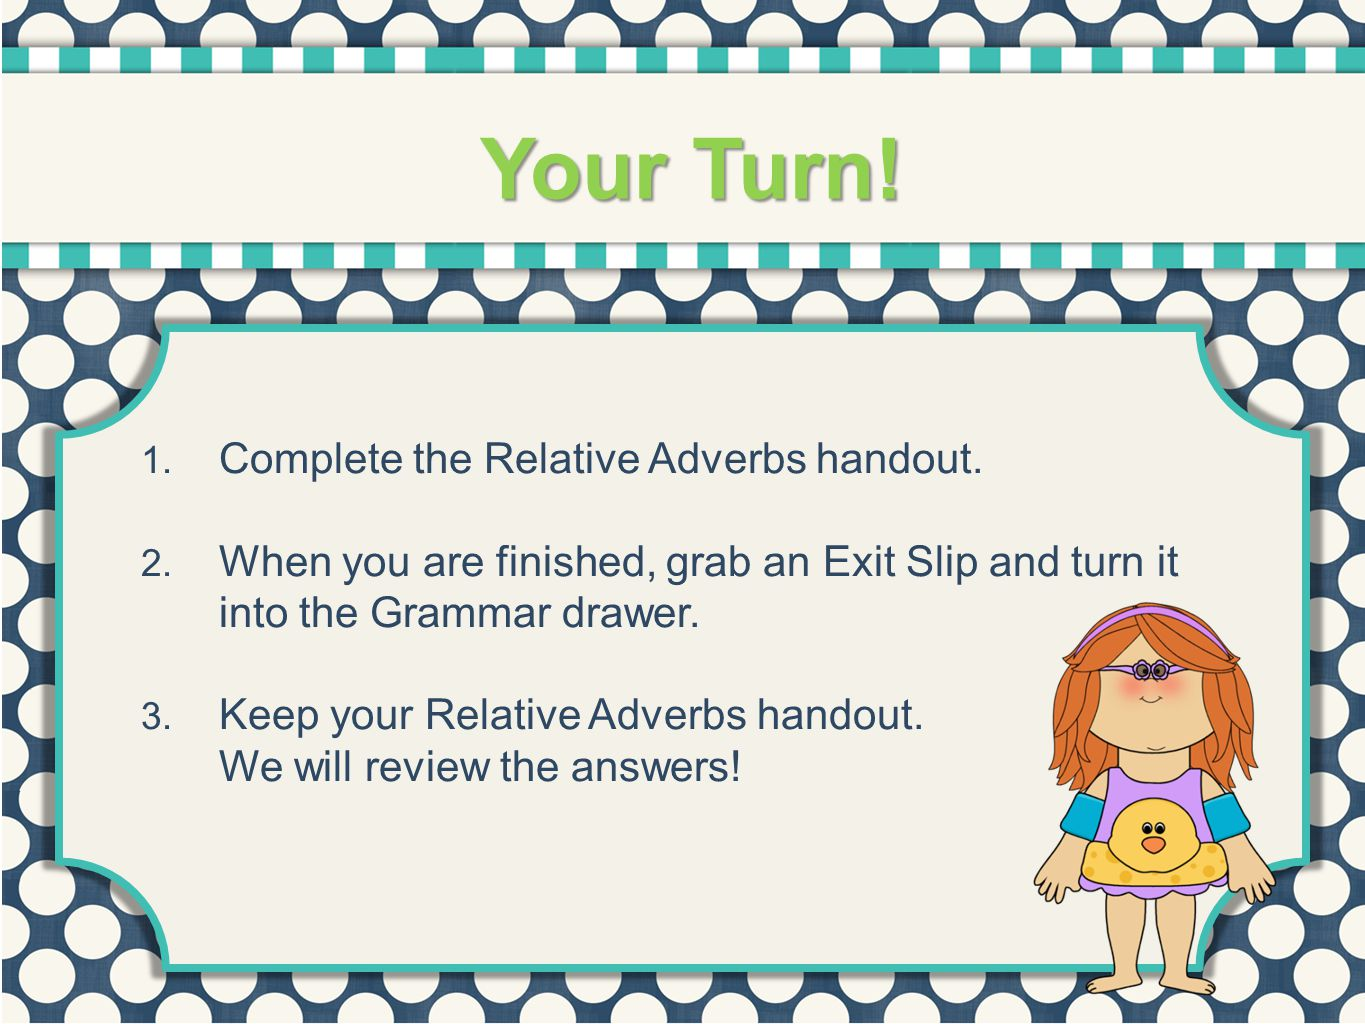 Your Turn! 1. Complete the Relative Adverbs handout. 2. When you are finished, grab an Exit Slip and turn it into the Grammar drawer. 3. Keep your Rel